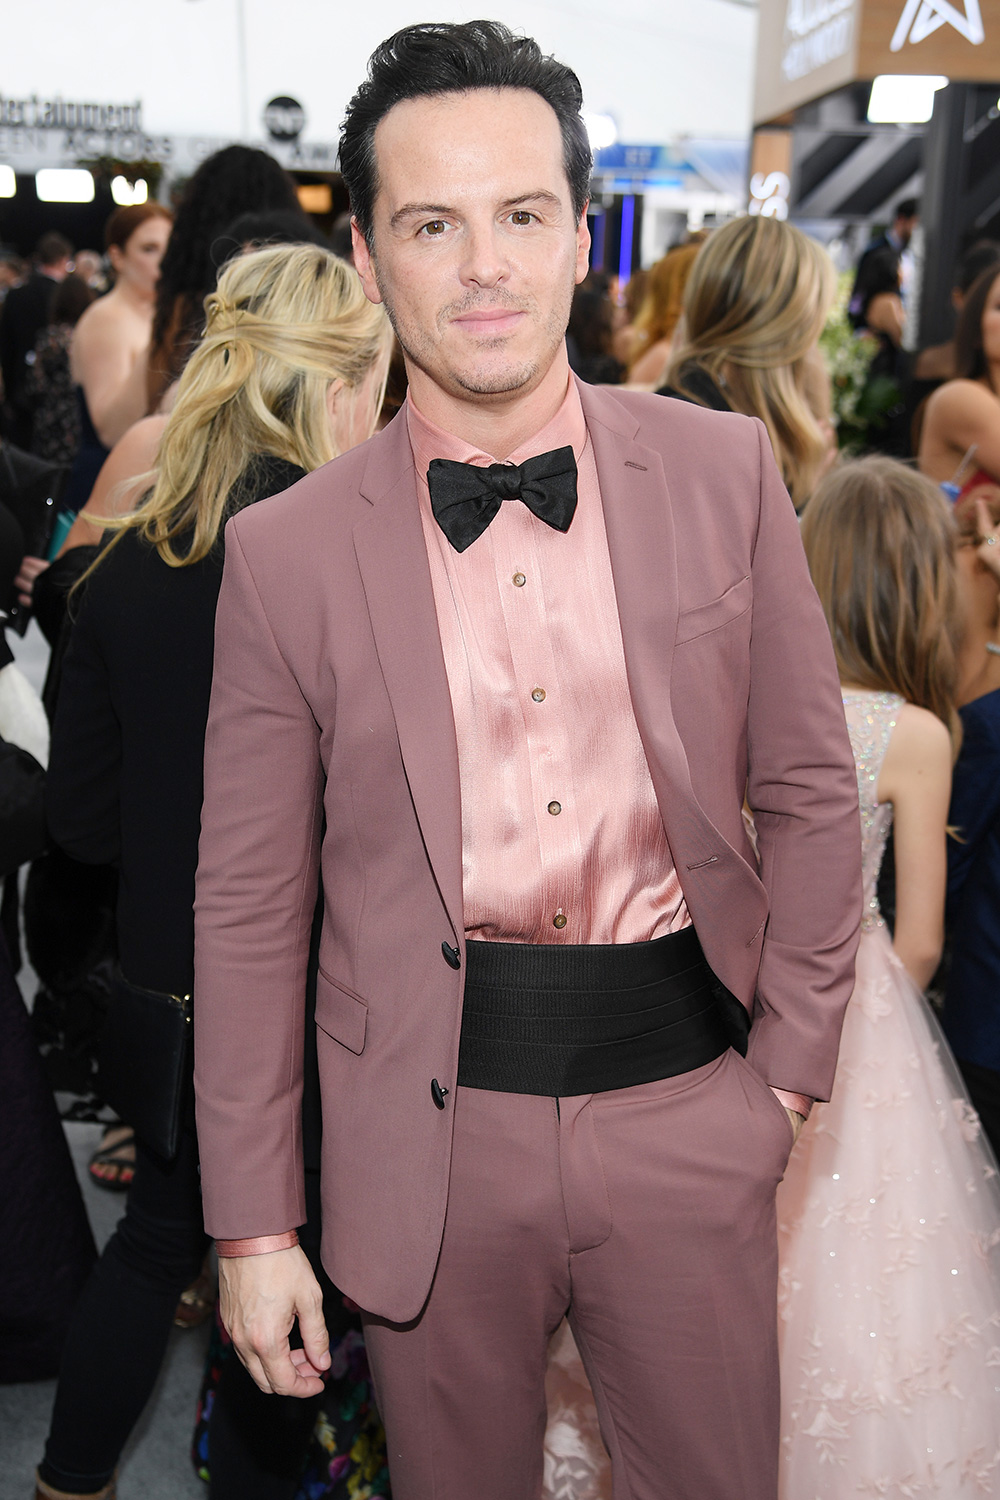 Andrew Scott attends the 26th Annual Screen ActorsGuild Awards at The Shrine Auditorium on January 19, 2020